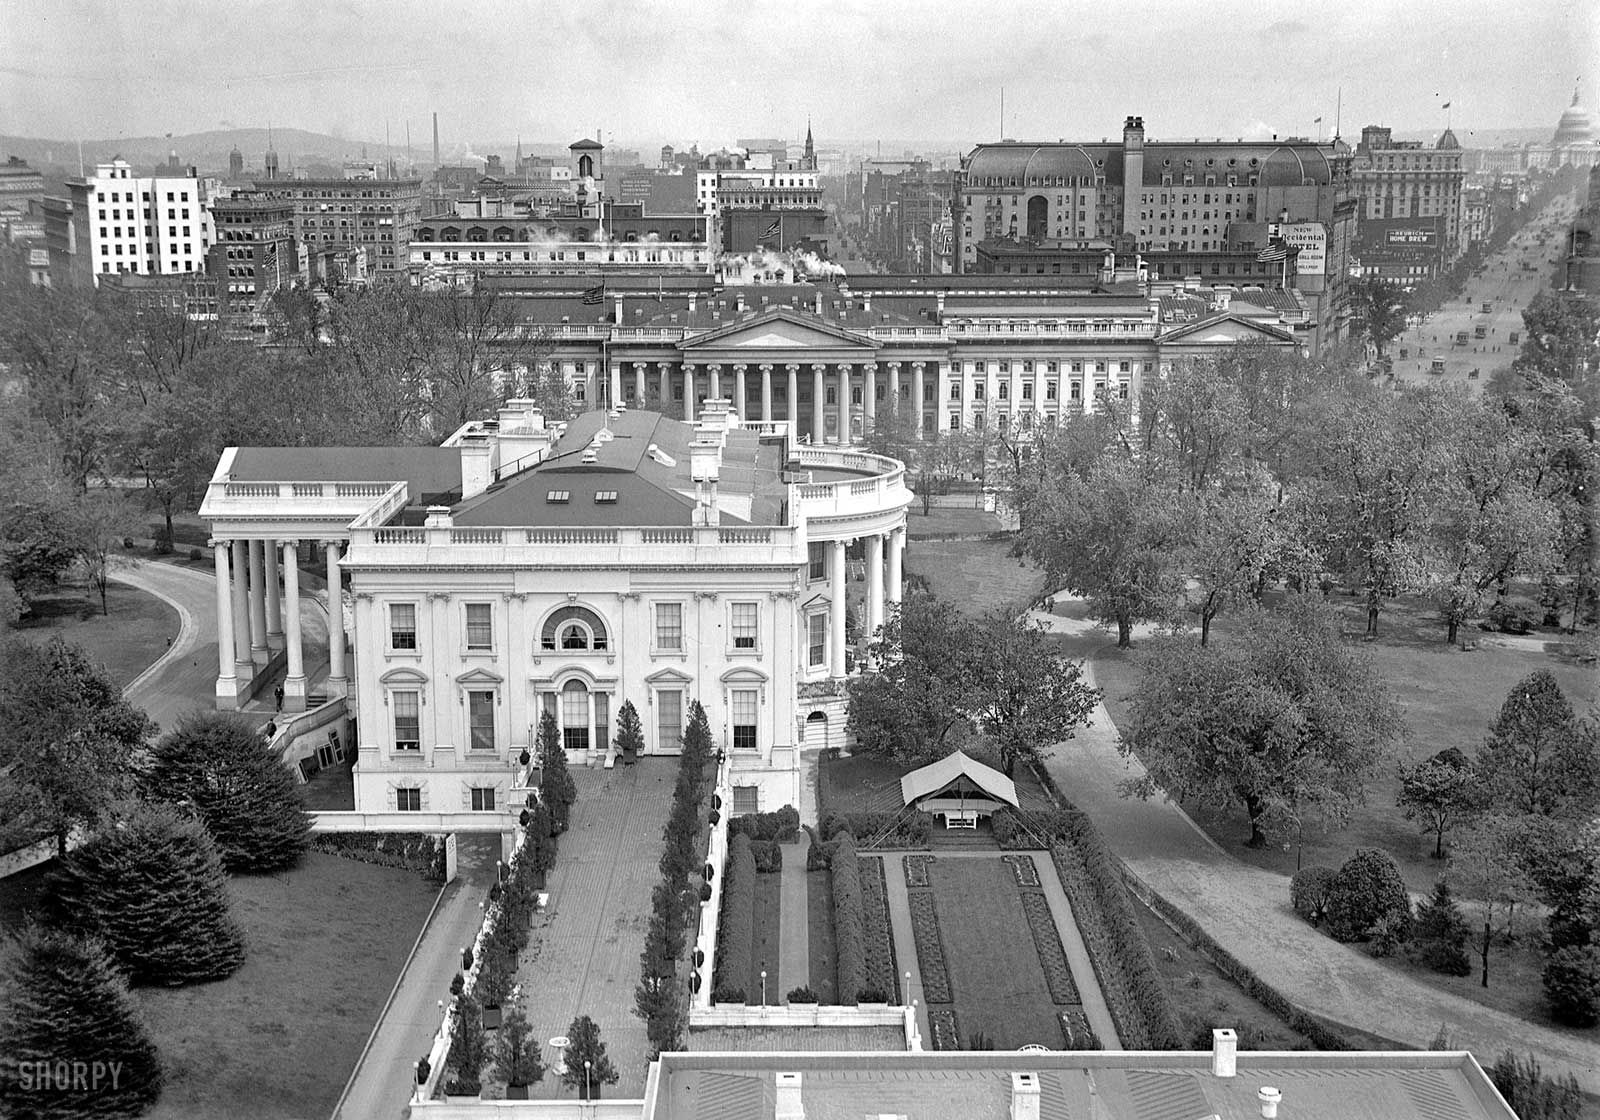 A 1914 view of the executive mansion (with tent in Rose Garden) from over the West Wing looking east past the Treasury building and along Pennsylvania Avenue to the Capitol